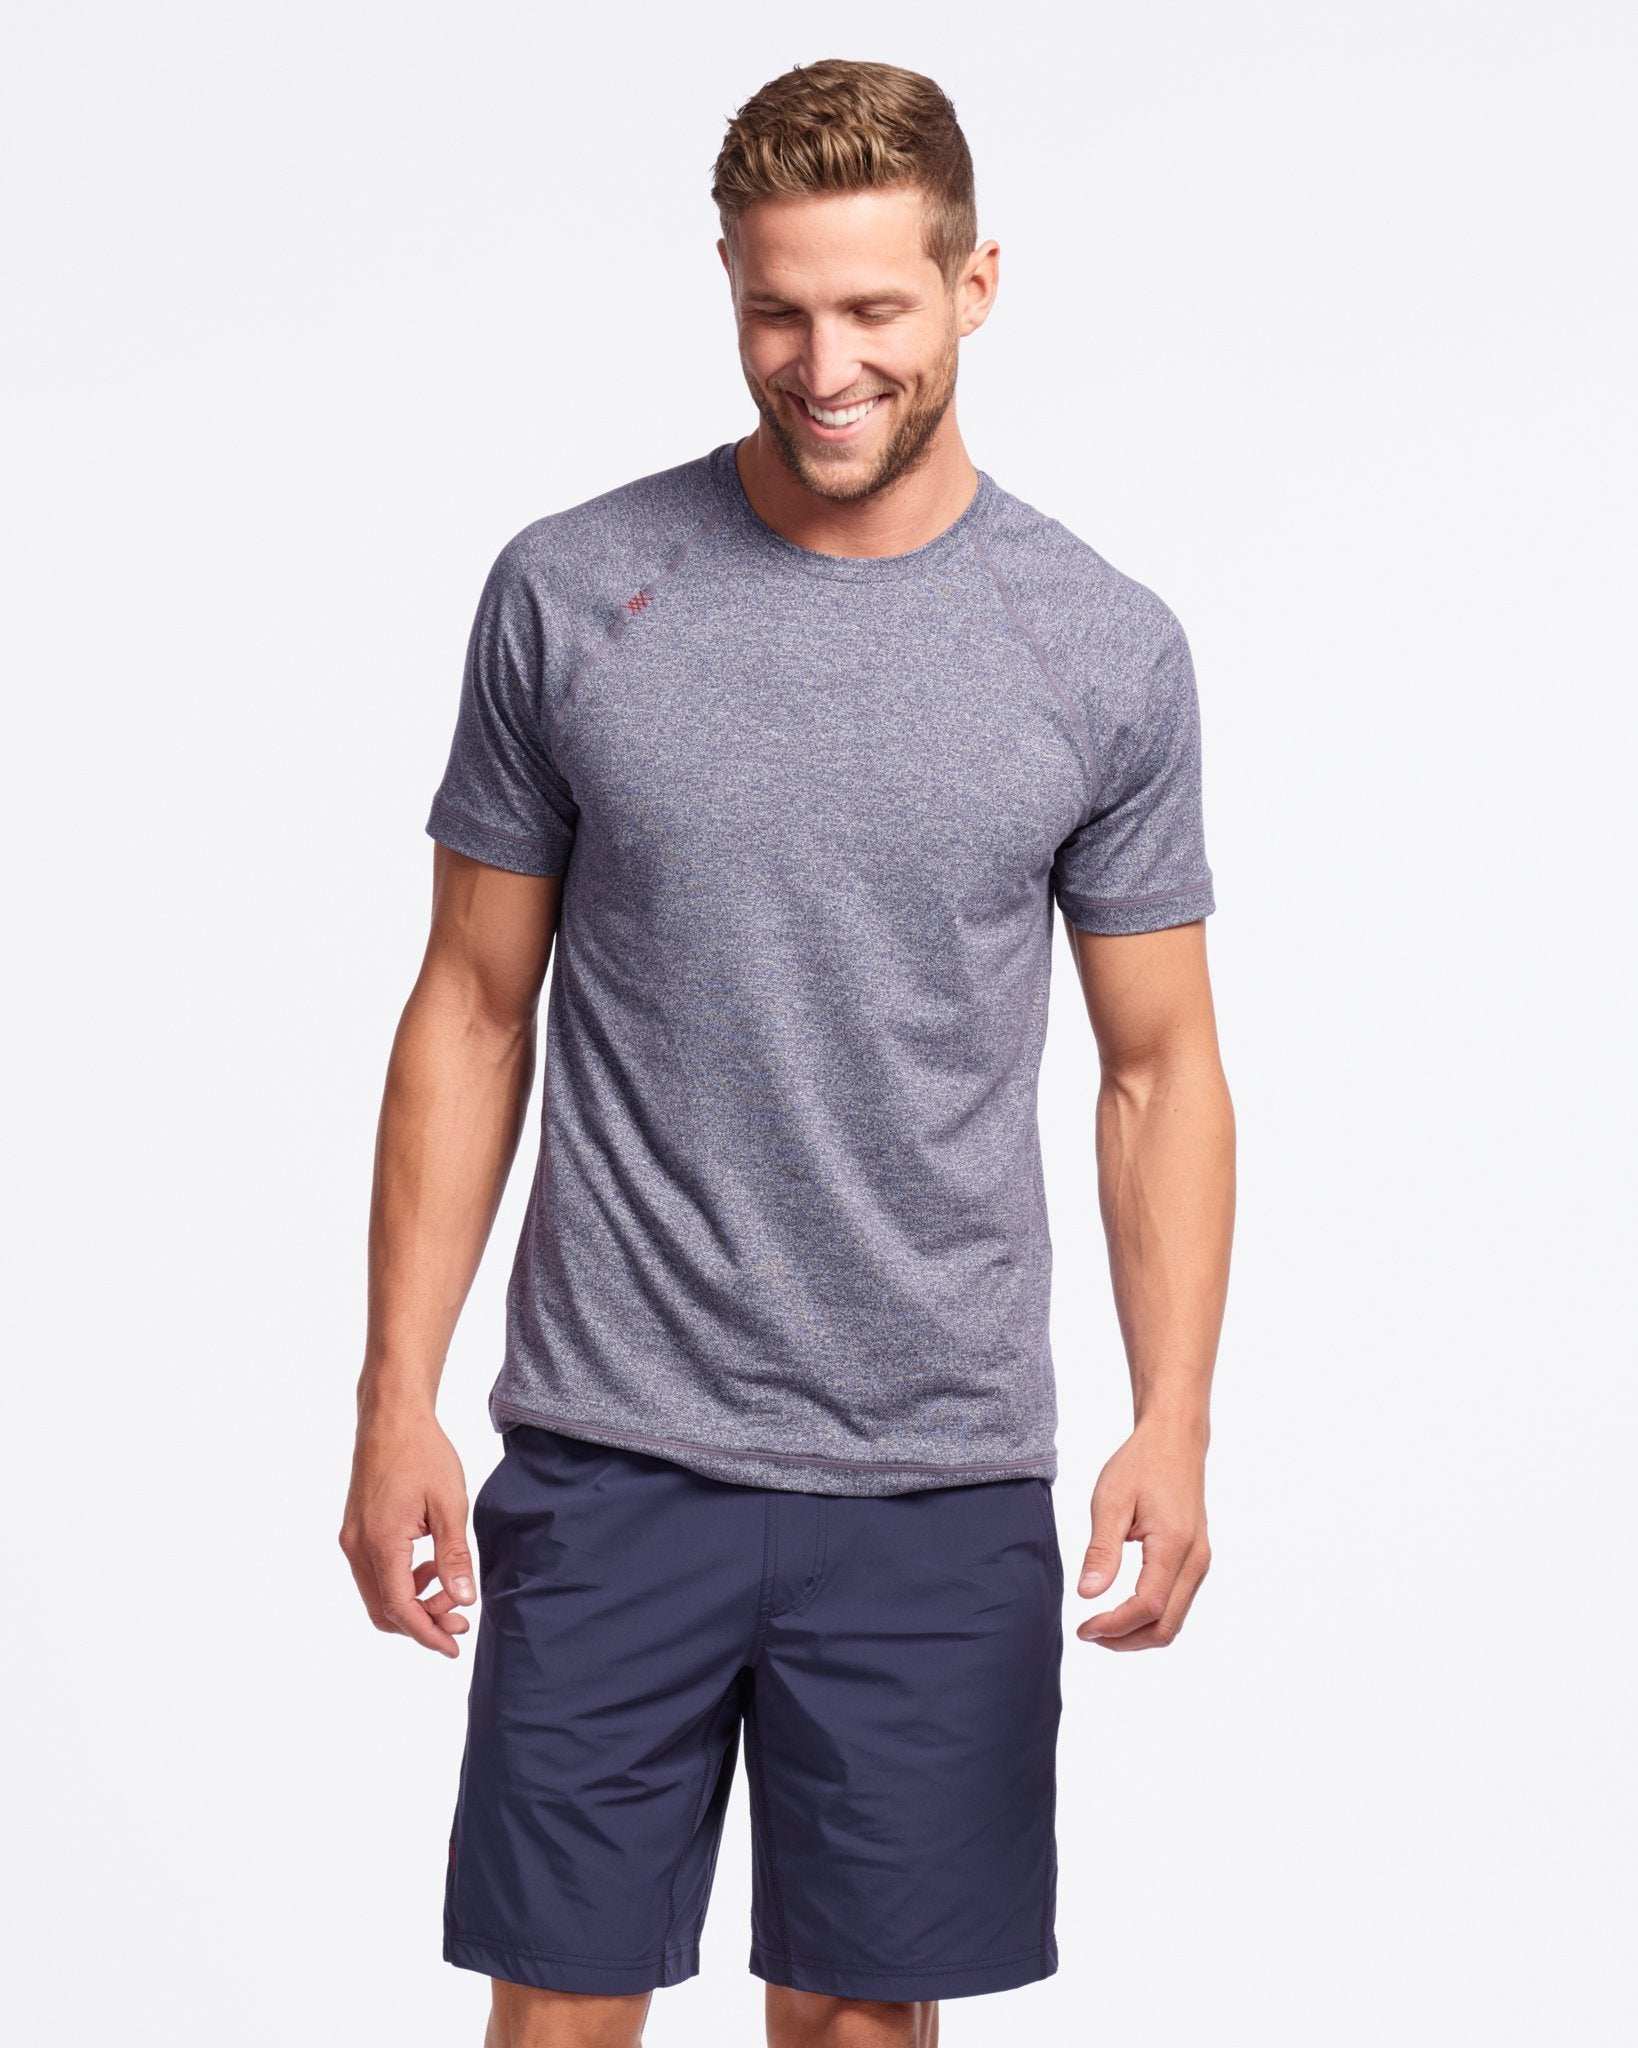 49aed929 Commuter Tech Polo. $92.00. Reign Short Sleeve